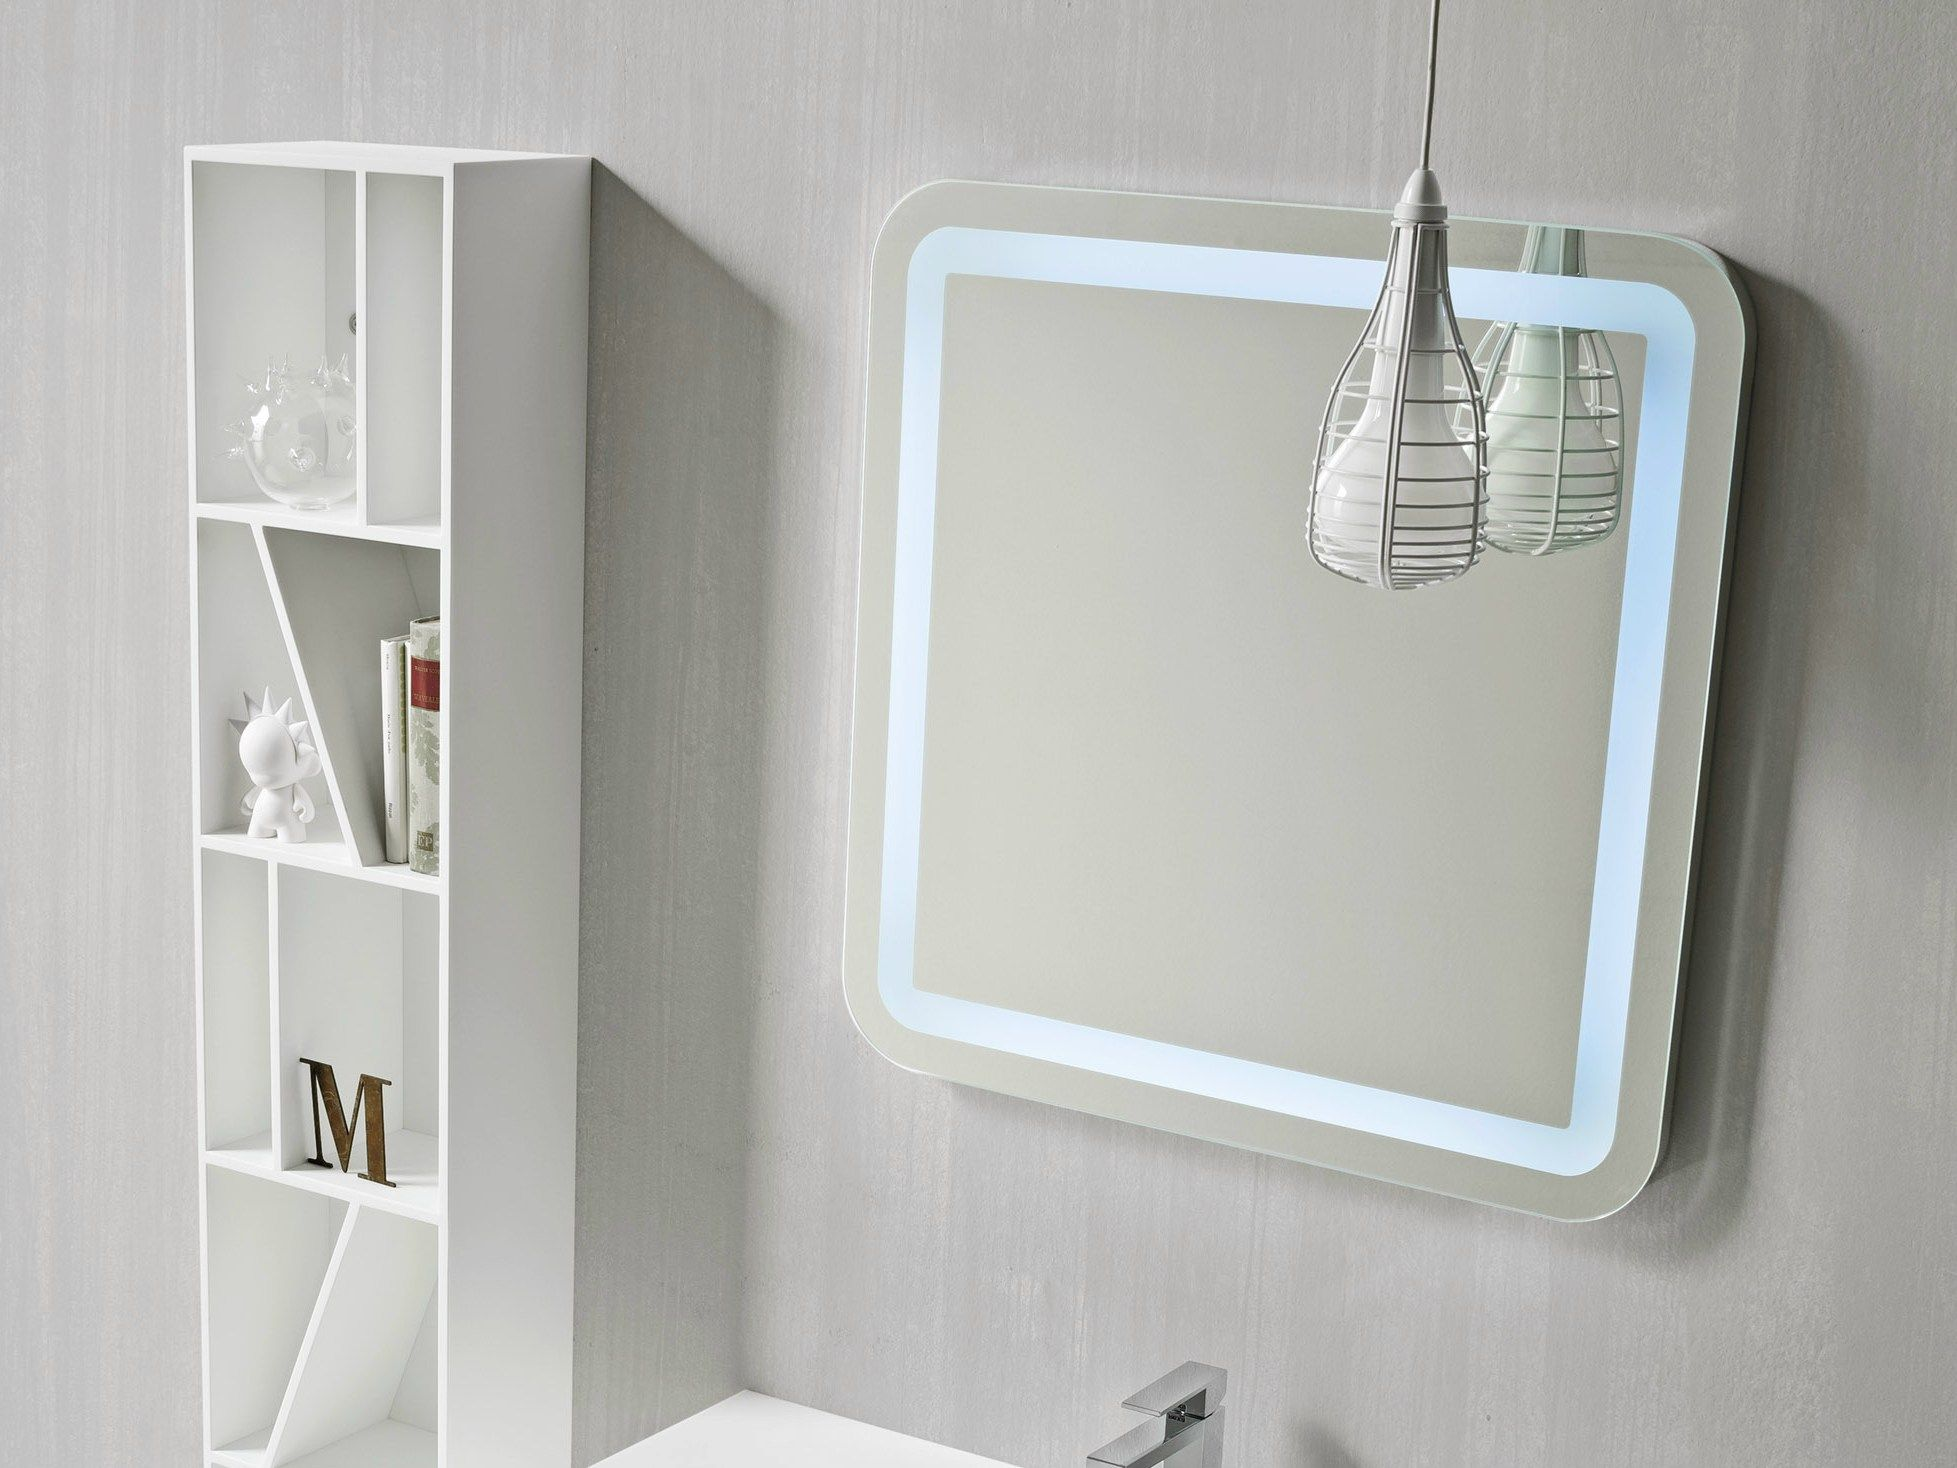 Bathroom Light Bathroom Mirrors With Lights Attached Extendable - Bathroom mirrors with lights attached for bathroom decor ideas